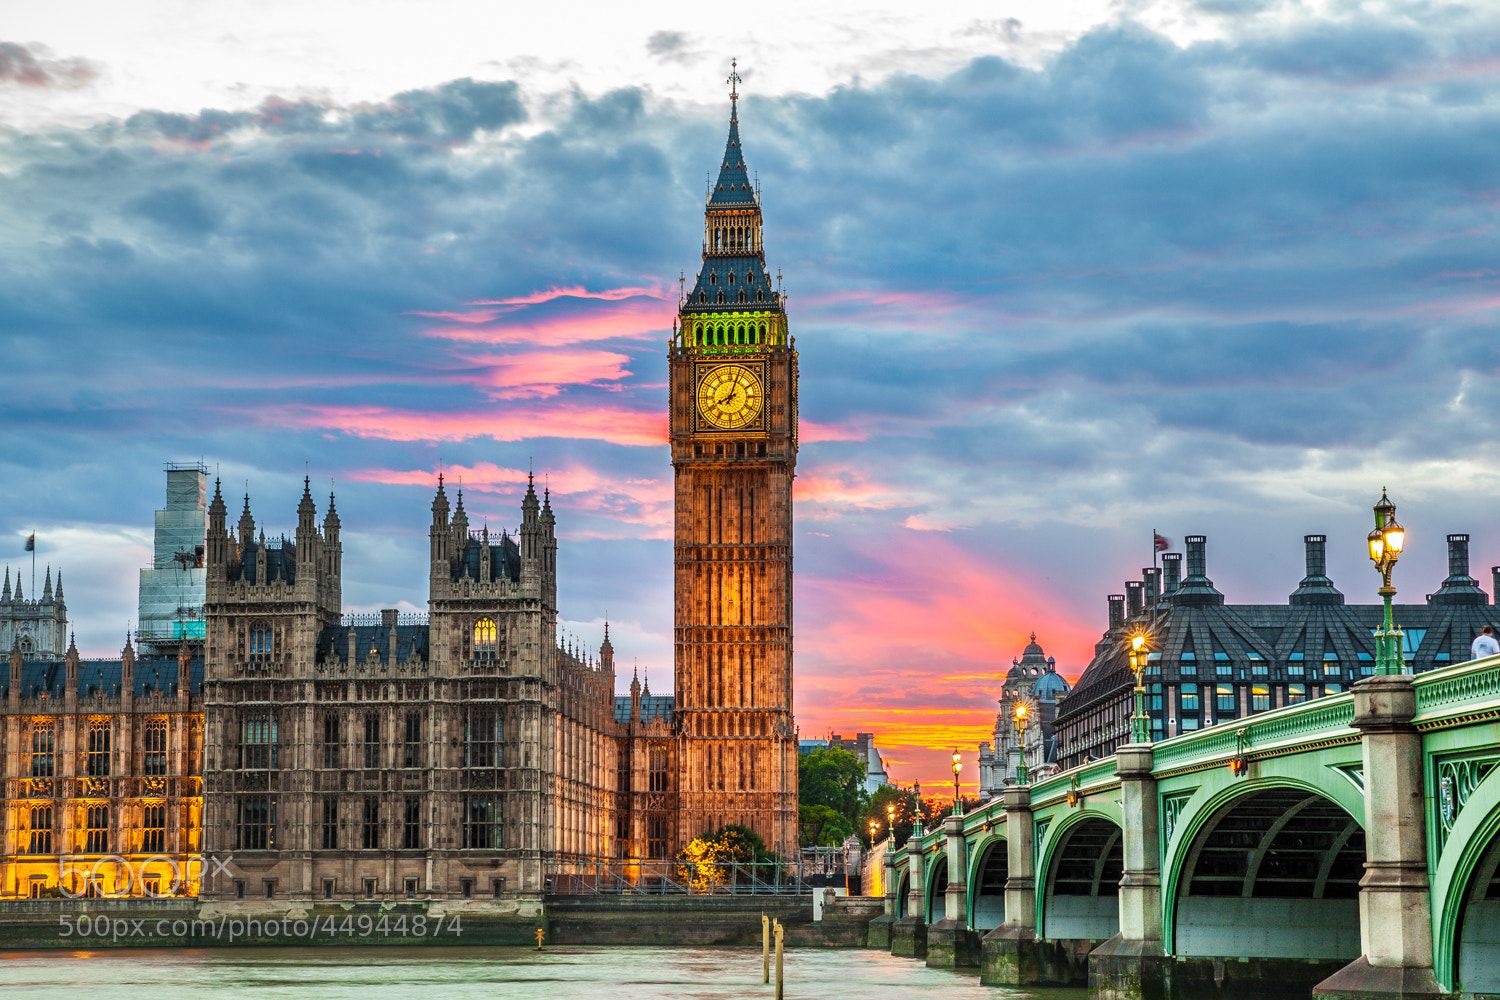 Photograph sunset in london by Arturas Kerdokas on 500px